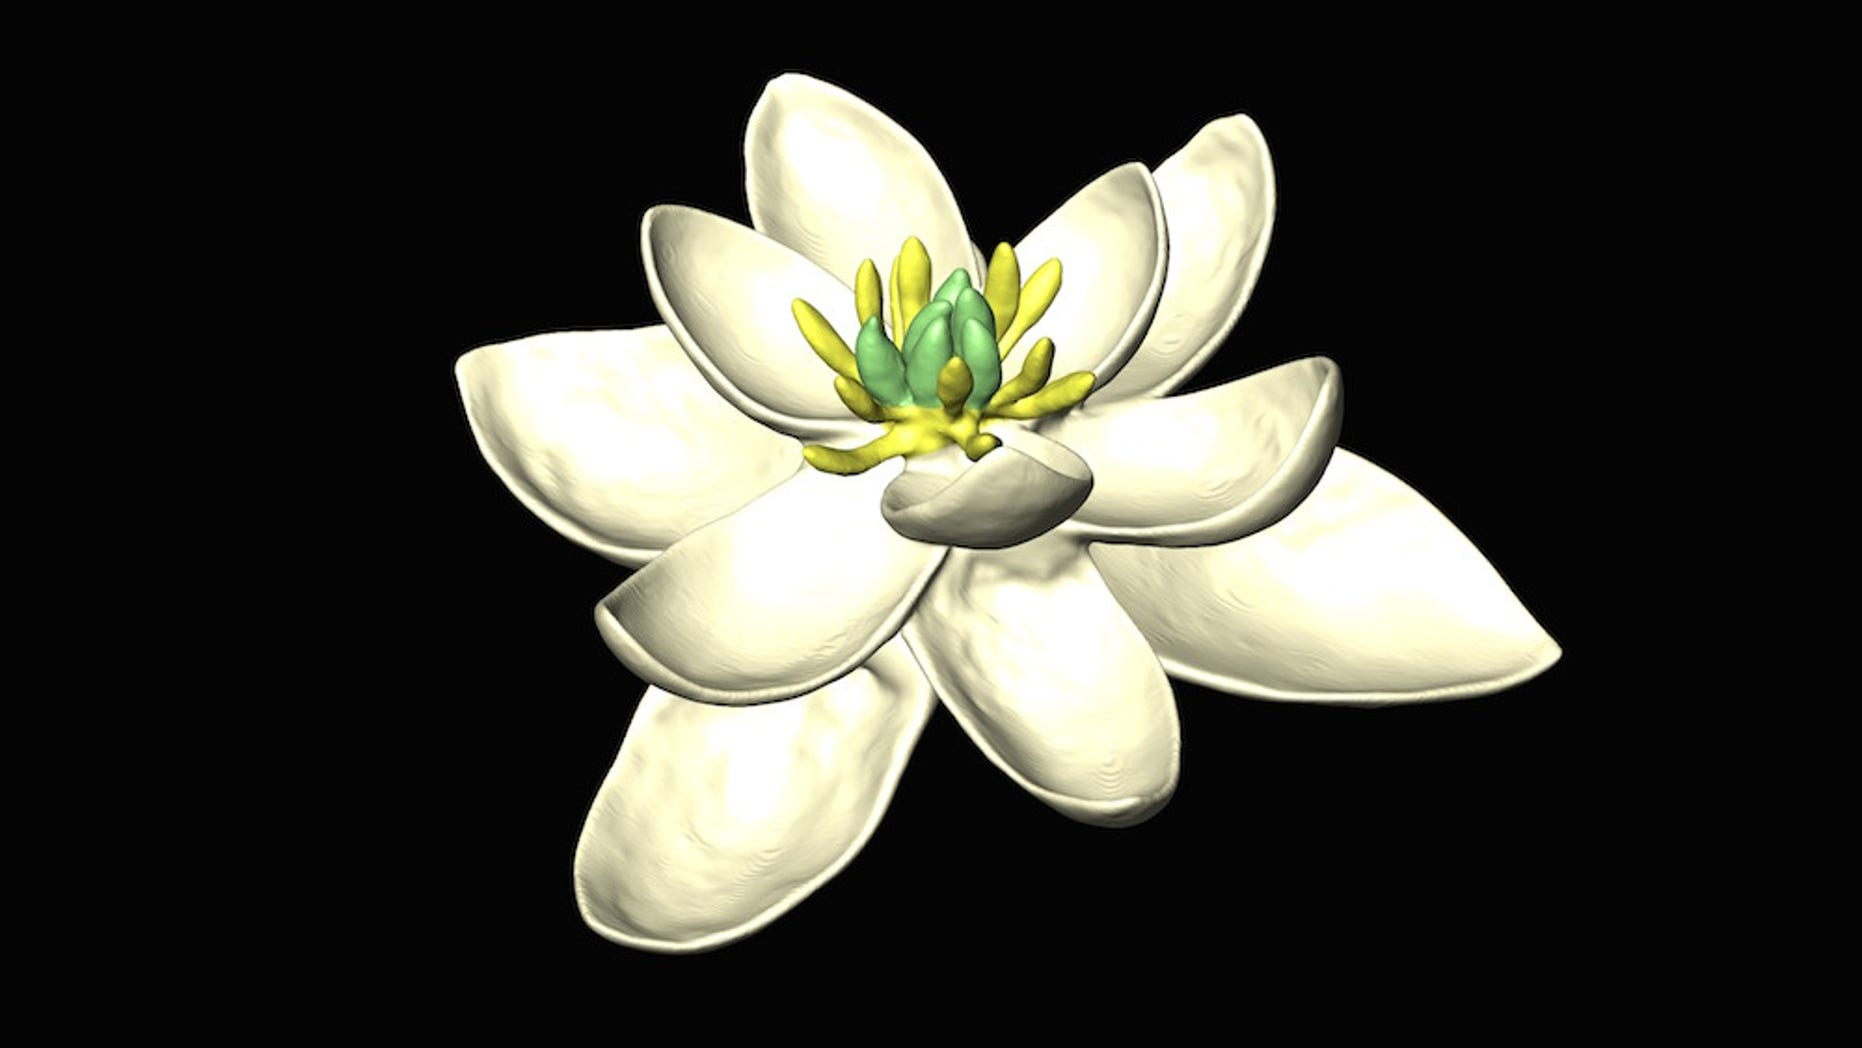 A 3D model of the reconstructed ancestral flower. It has both female (carpels) and male (stamens) parts, and multiple whorls of petal-like organs in sets of three.